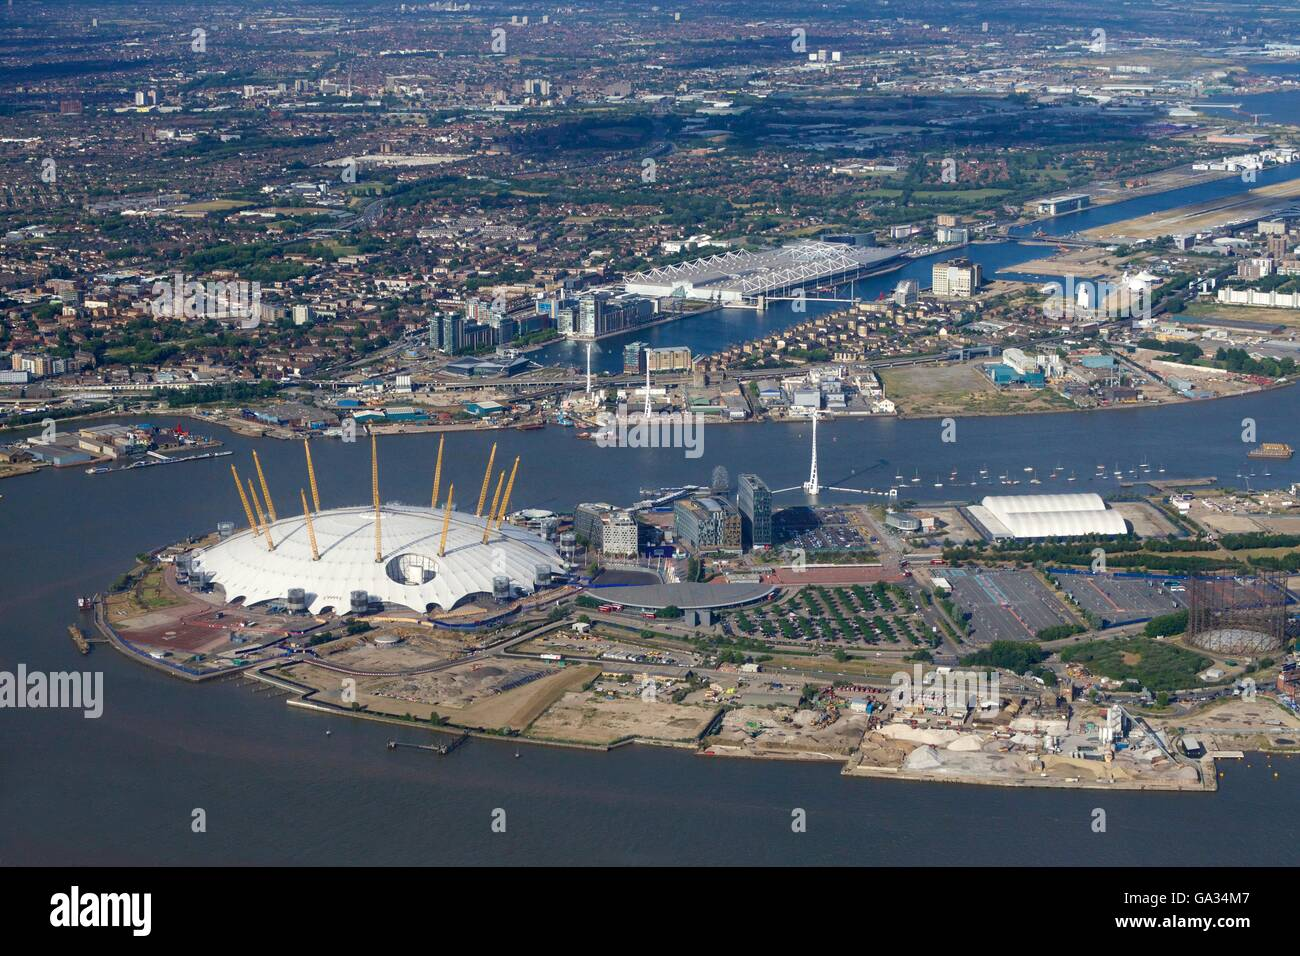 Aerial view of London City Airport and O2 Arena, London, England, UK, GB Stock Photo